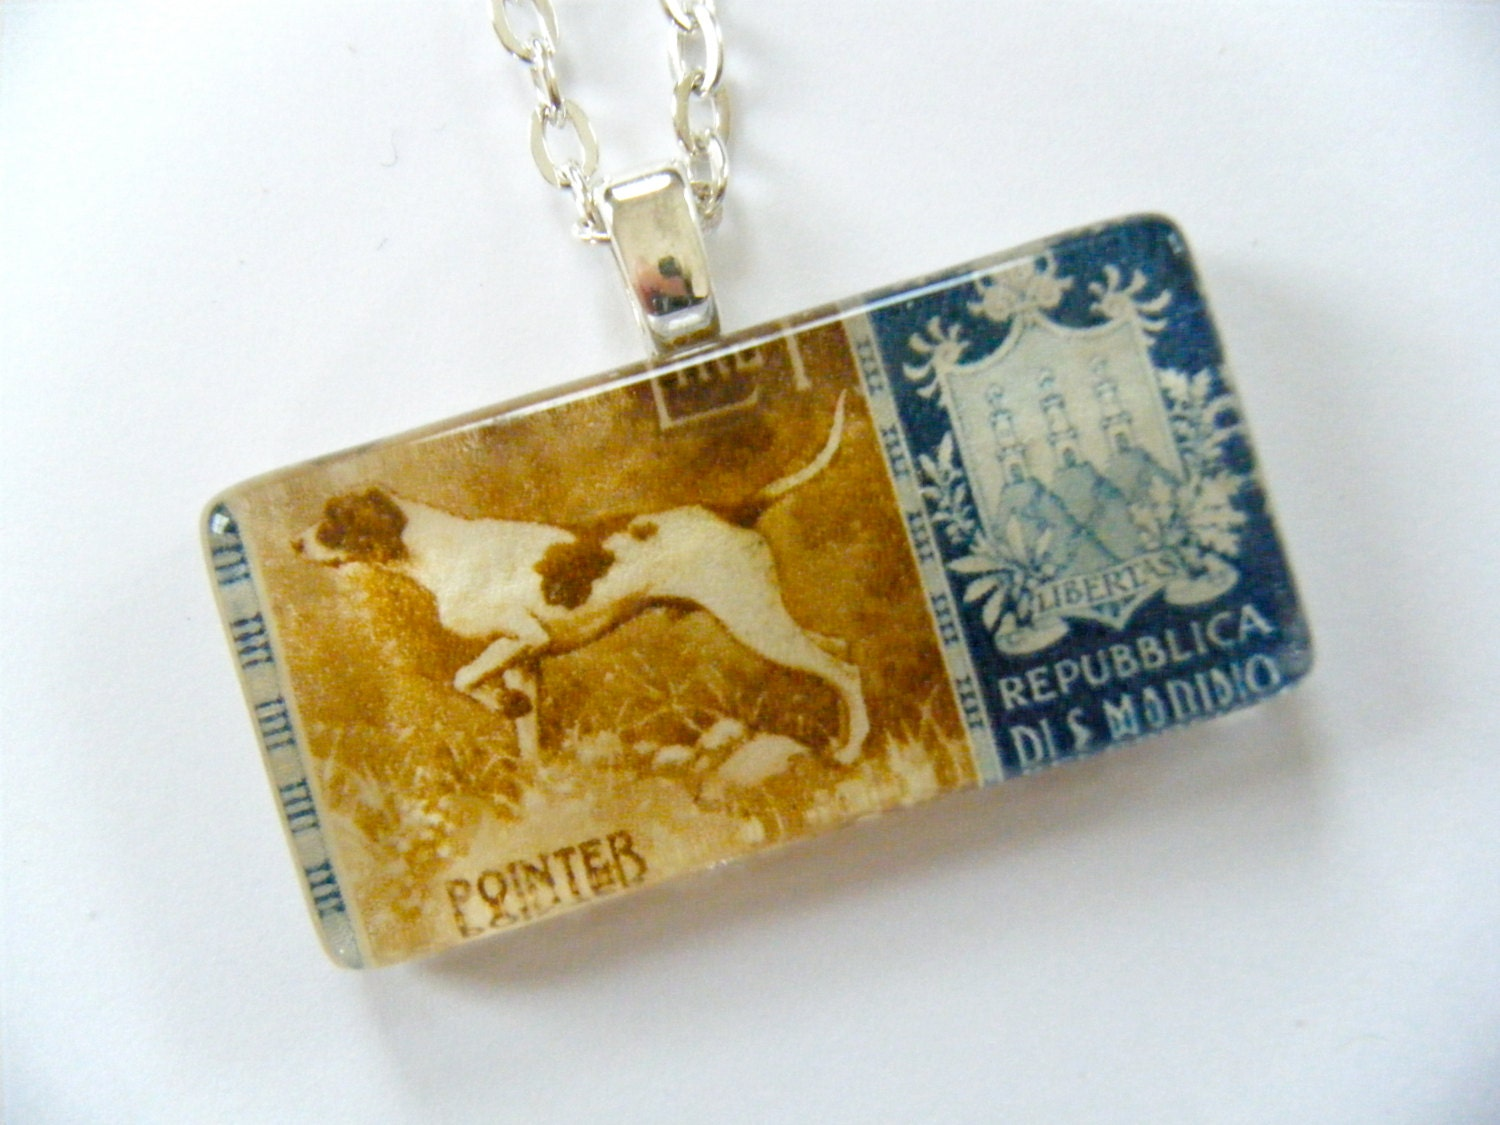 OOAK Pointer Dog Italy Postage Stamp Glass Tile Pendant Republic San Marino Recycled Material Upcycled Paper Postal Italian Necklace Pendant - HeidiKindFinds